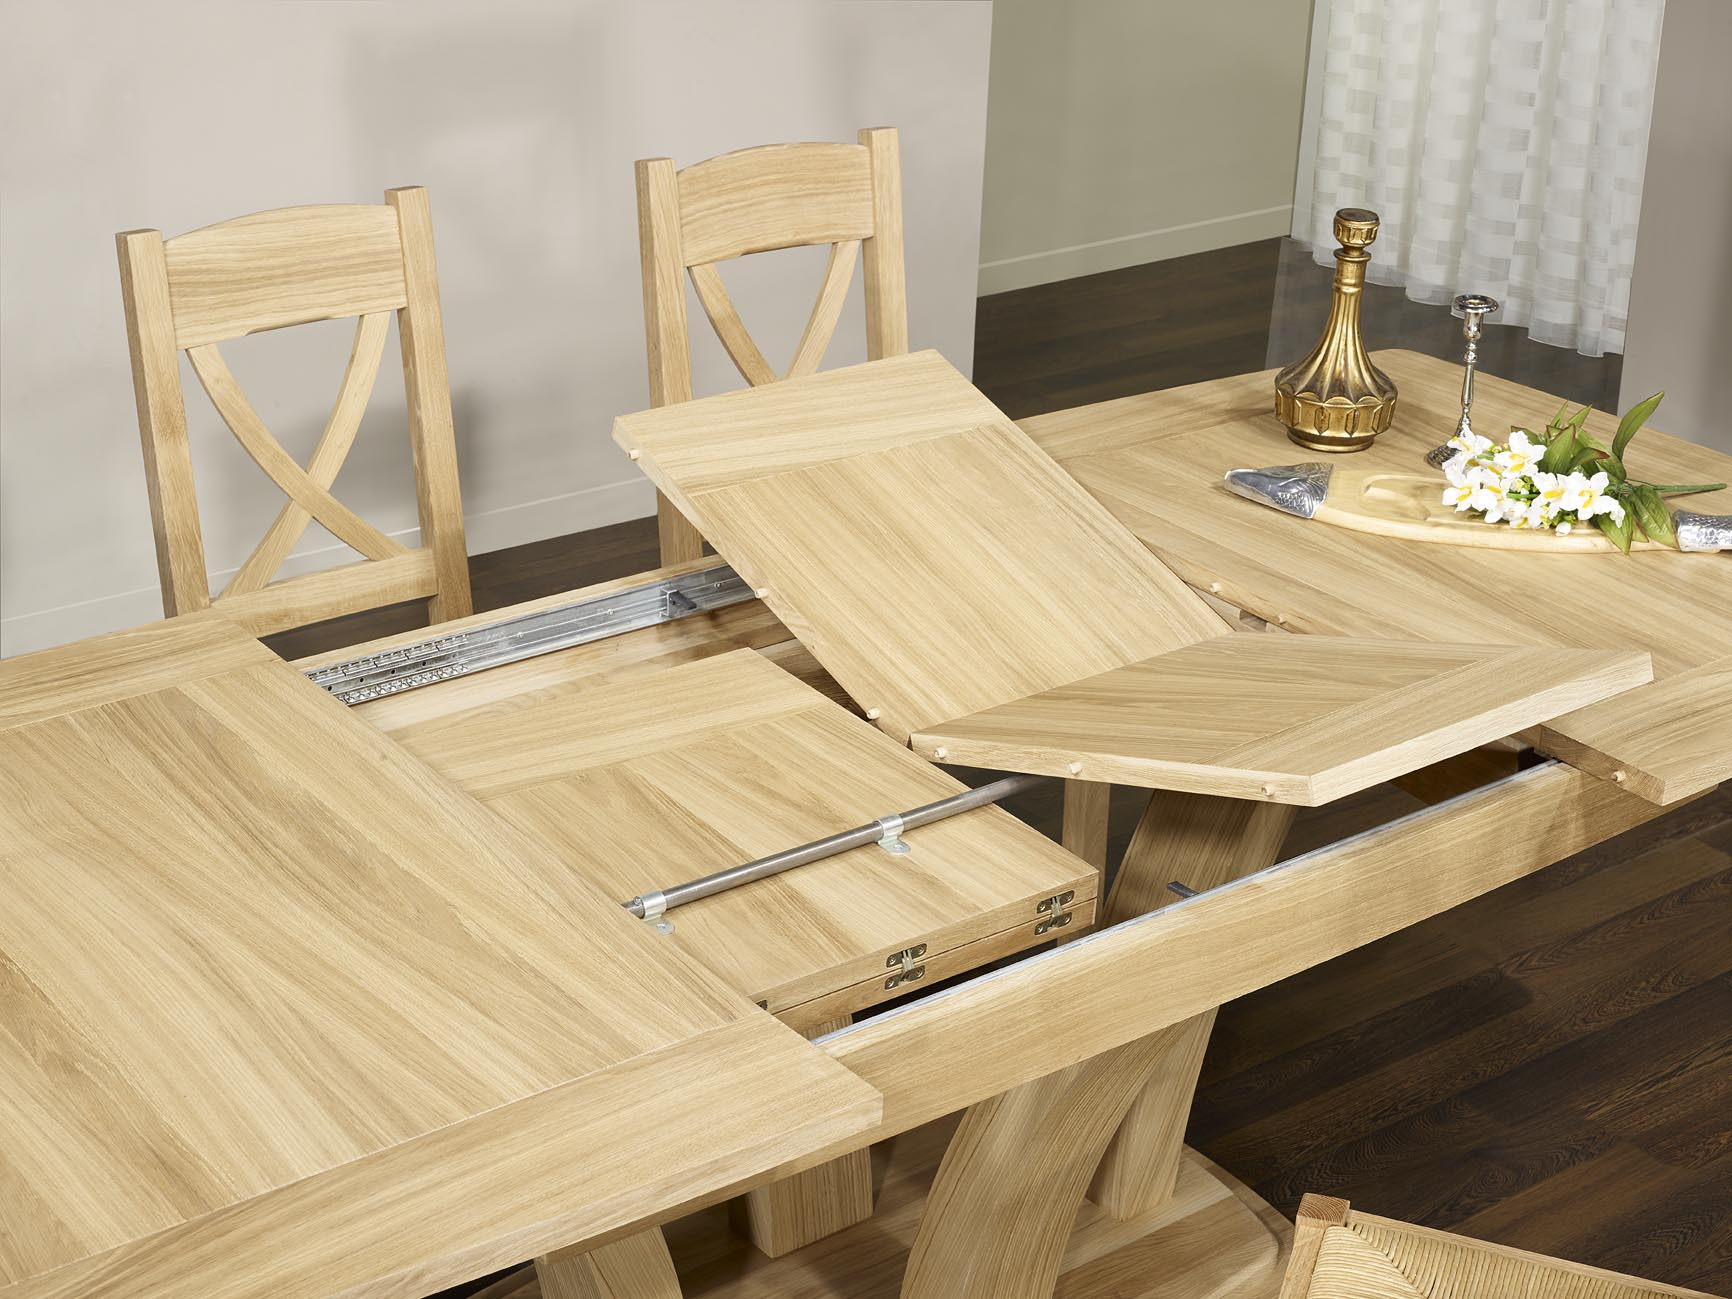 Table de repas contemporaine en ch ne massif finition ch ne bross naturel - Table en chene massif prix ...